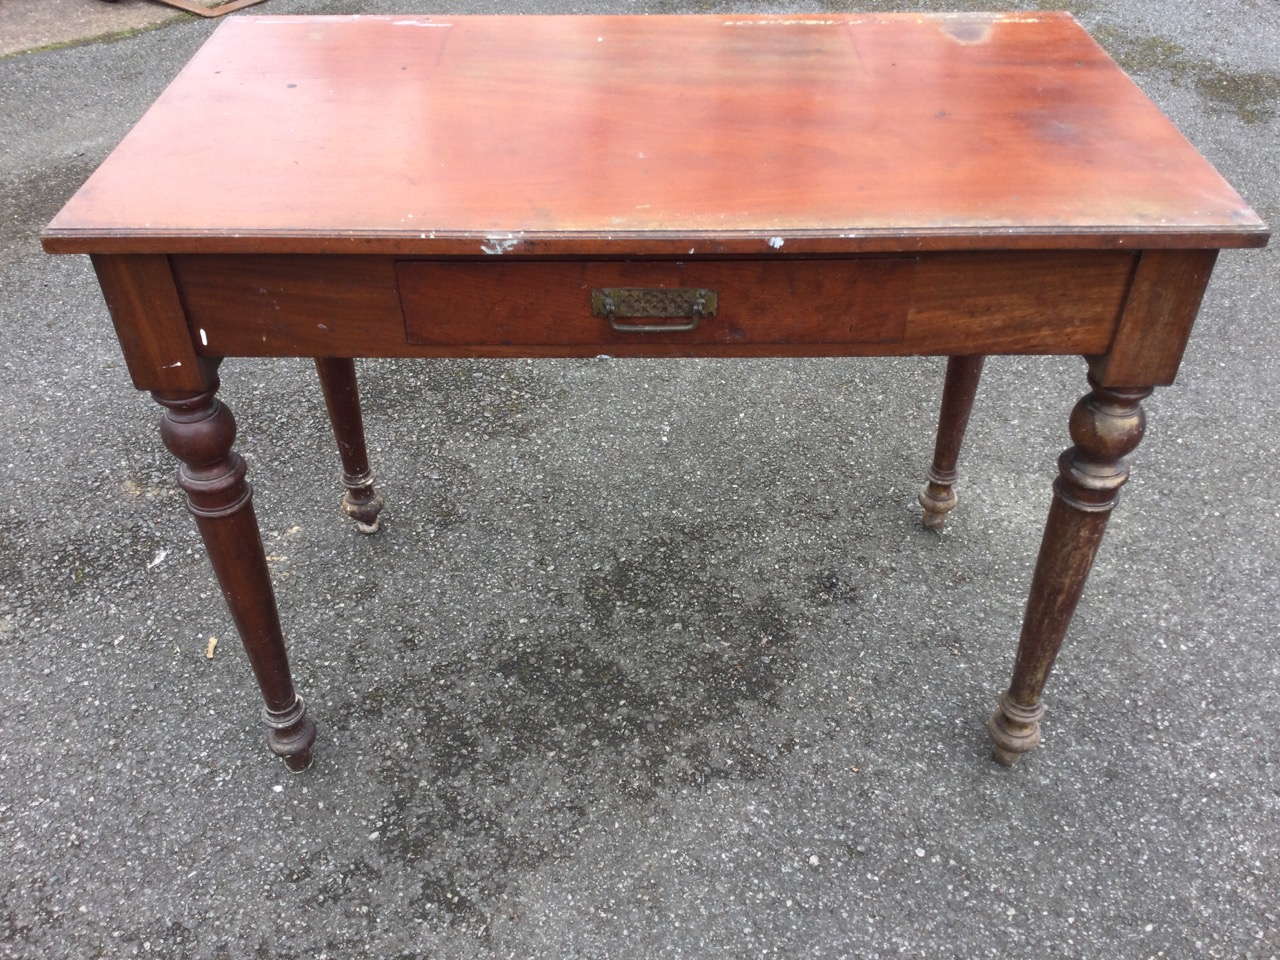 A Victorian mahogany side table with rectangular moulded top above a central frieze drawer, raised - Image 2 of 3